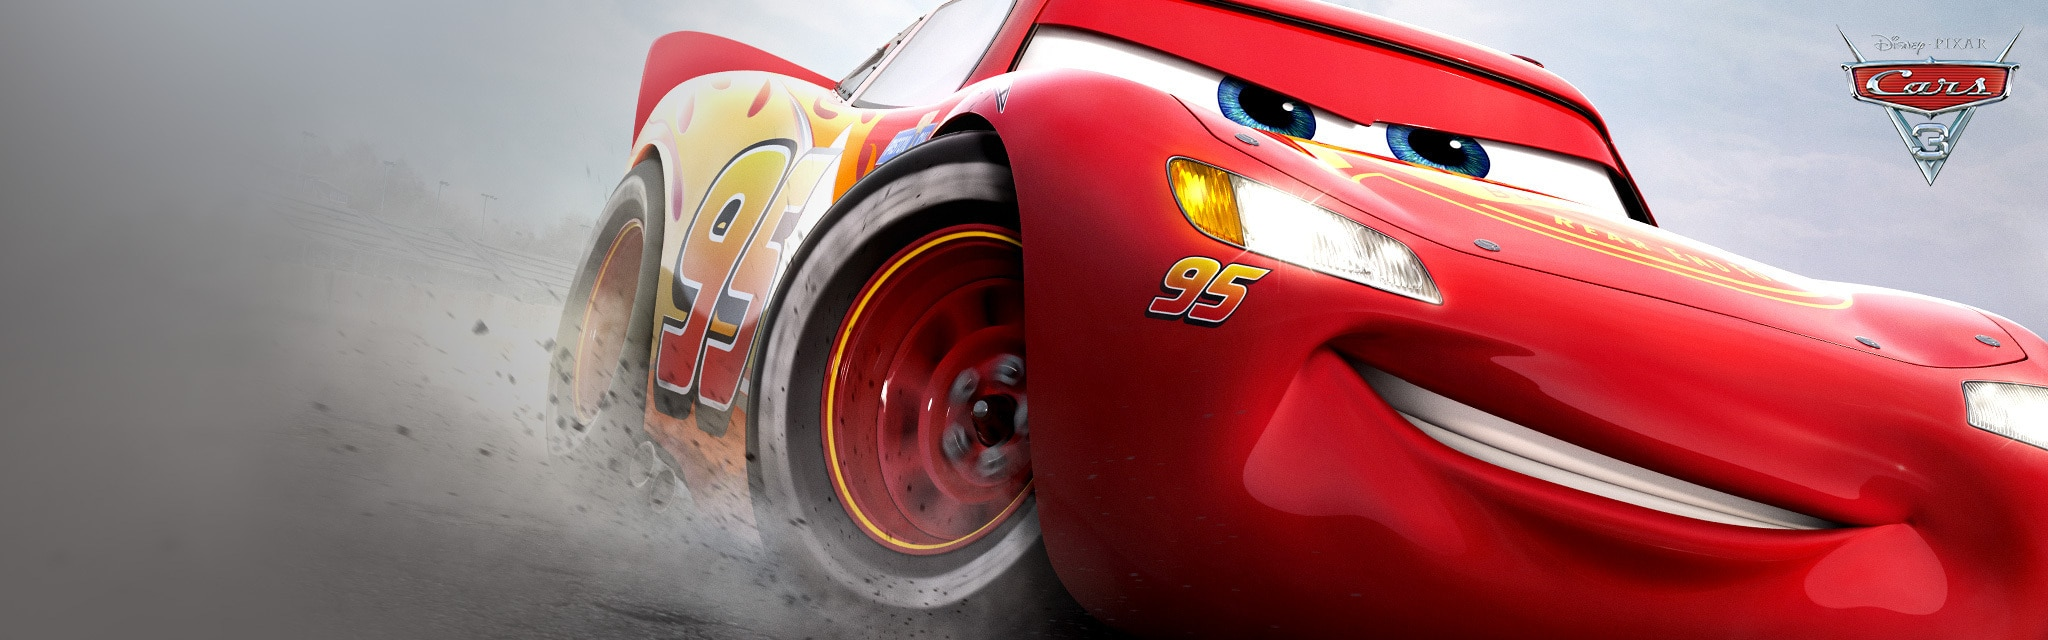 Cars 3 - Get Tickets - Hero